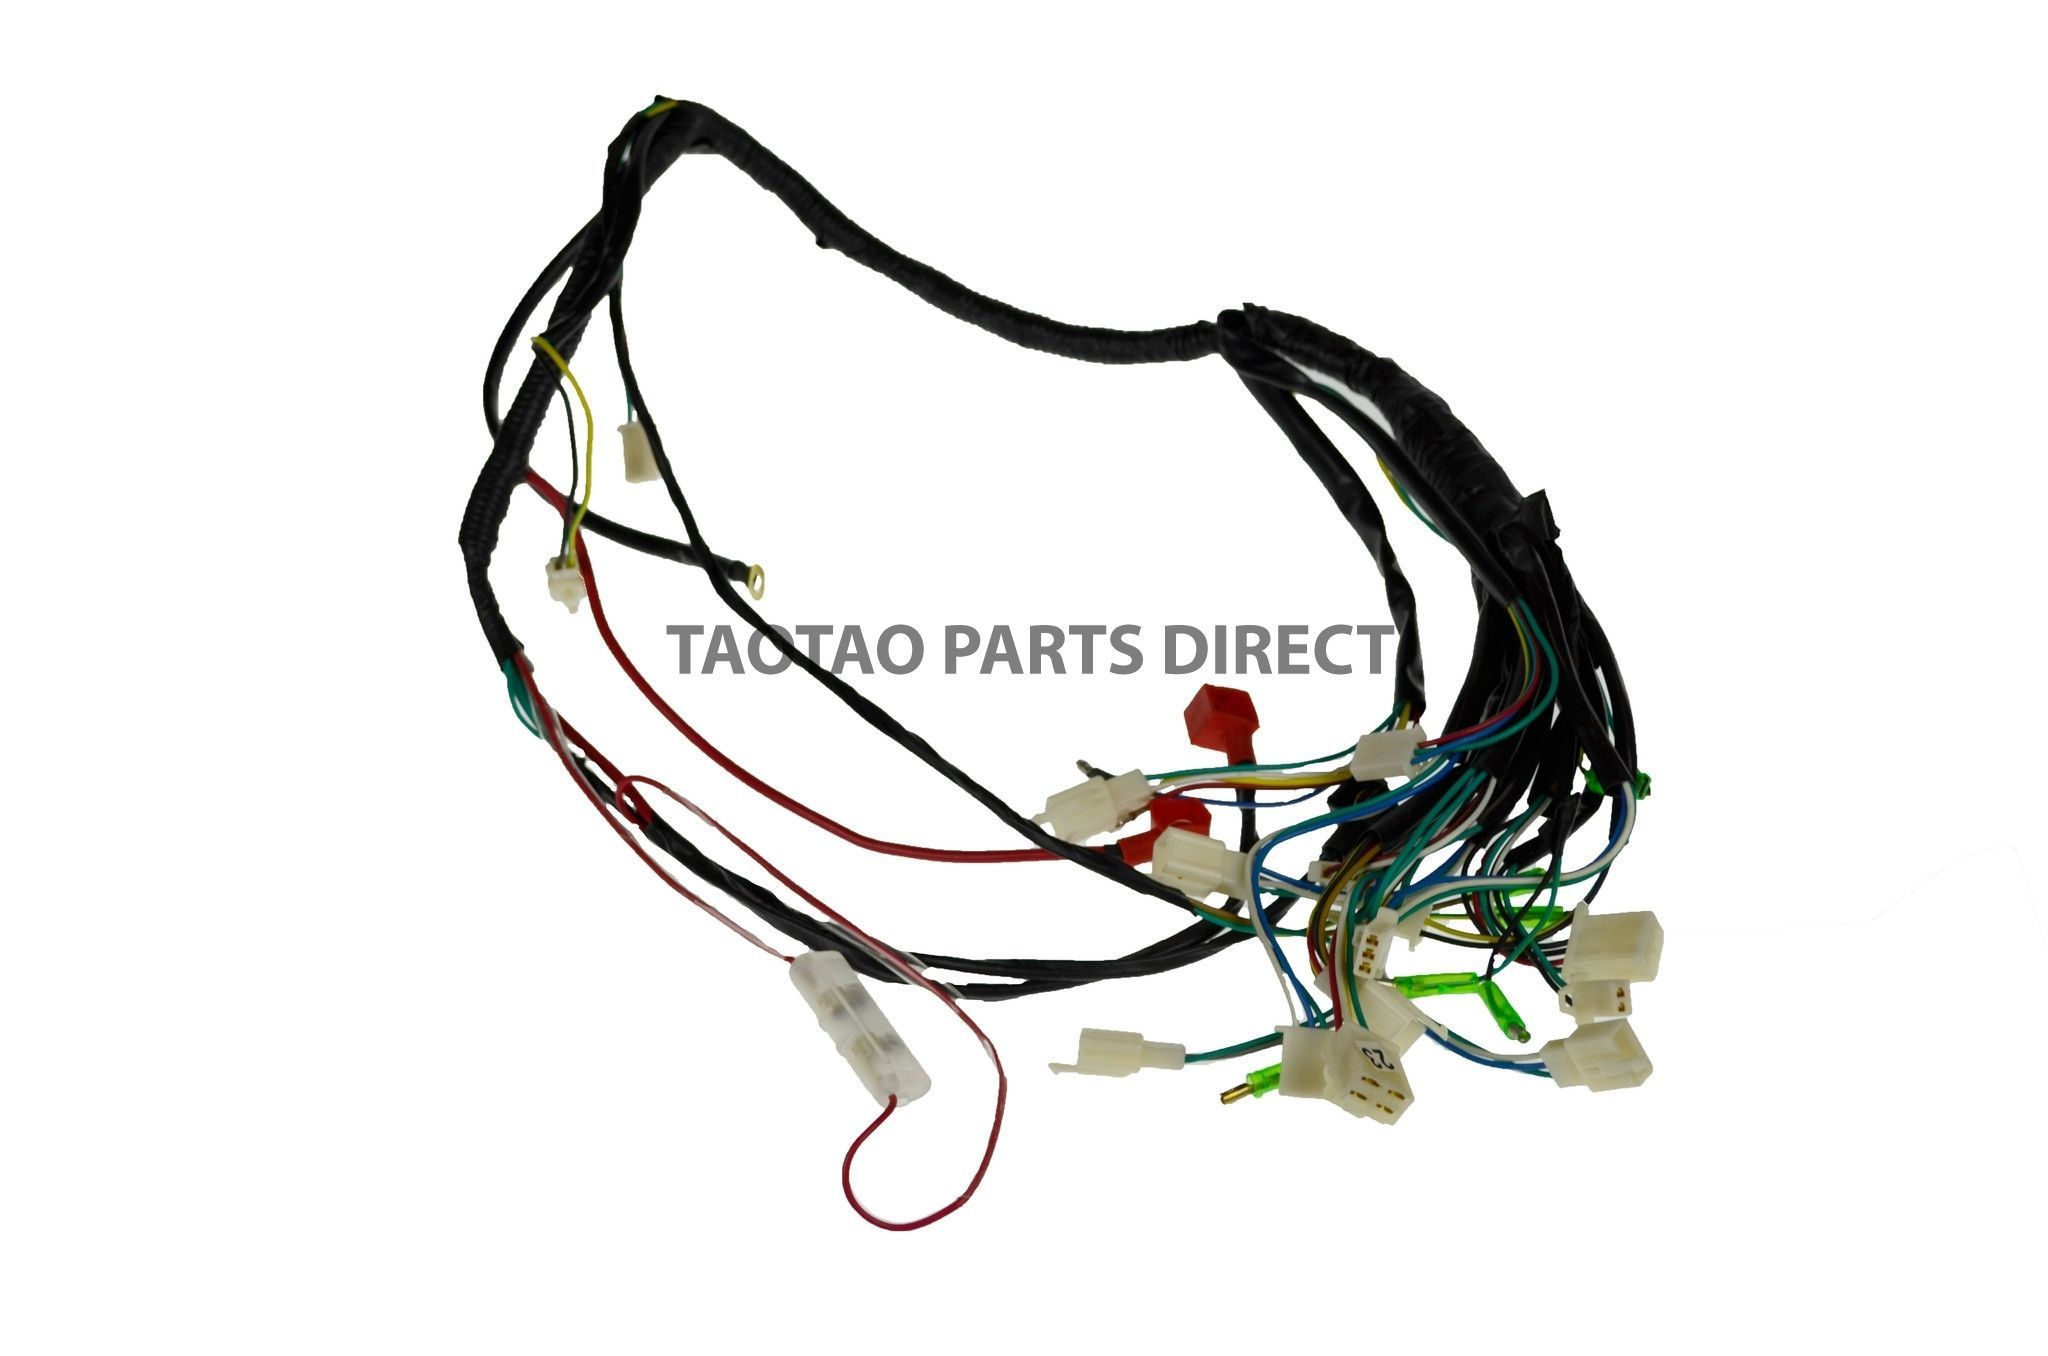 medium resolution of furuno 30 meter signal cable assembly f 1622 1712 wire harnessing cable wire electronics gadgets